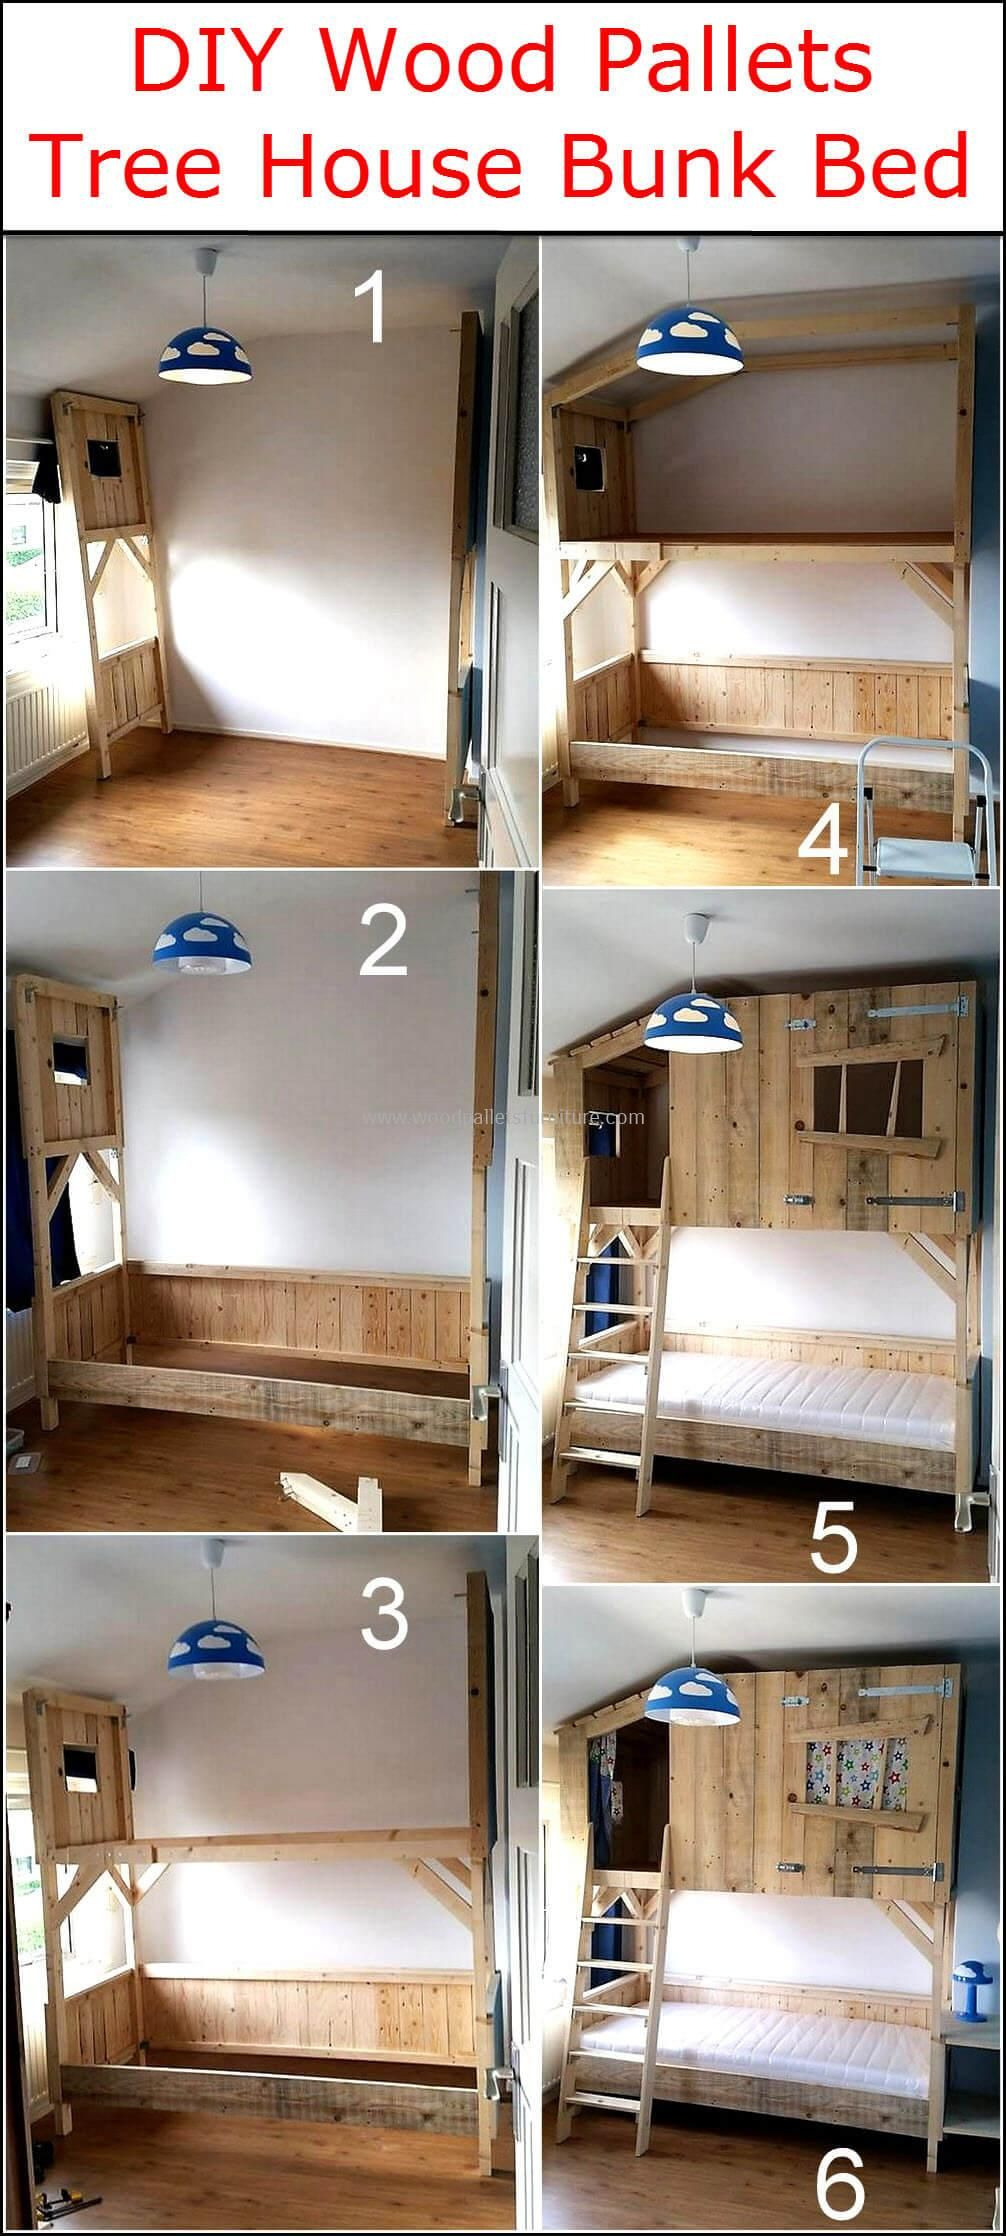 Tree House Bunk Bed Plans New Diy Wood Pallets Tree House Bunk Bed